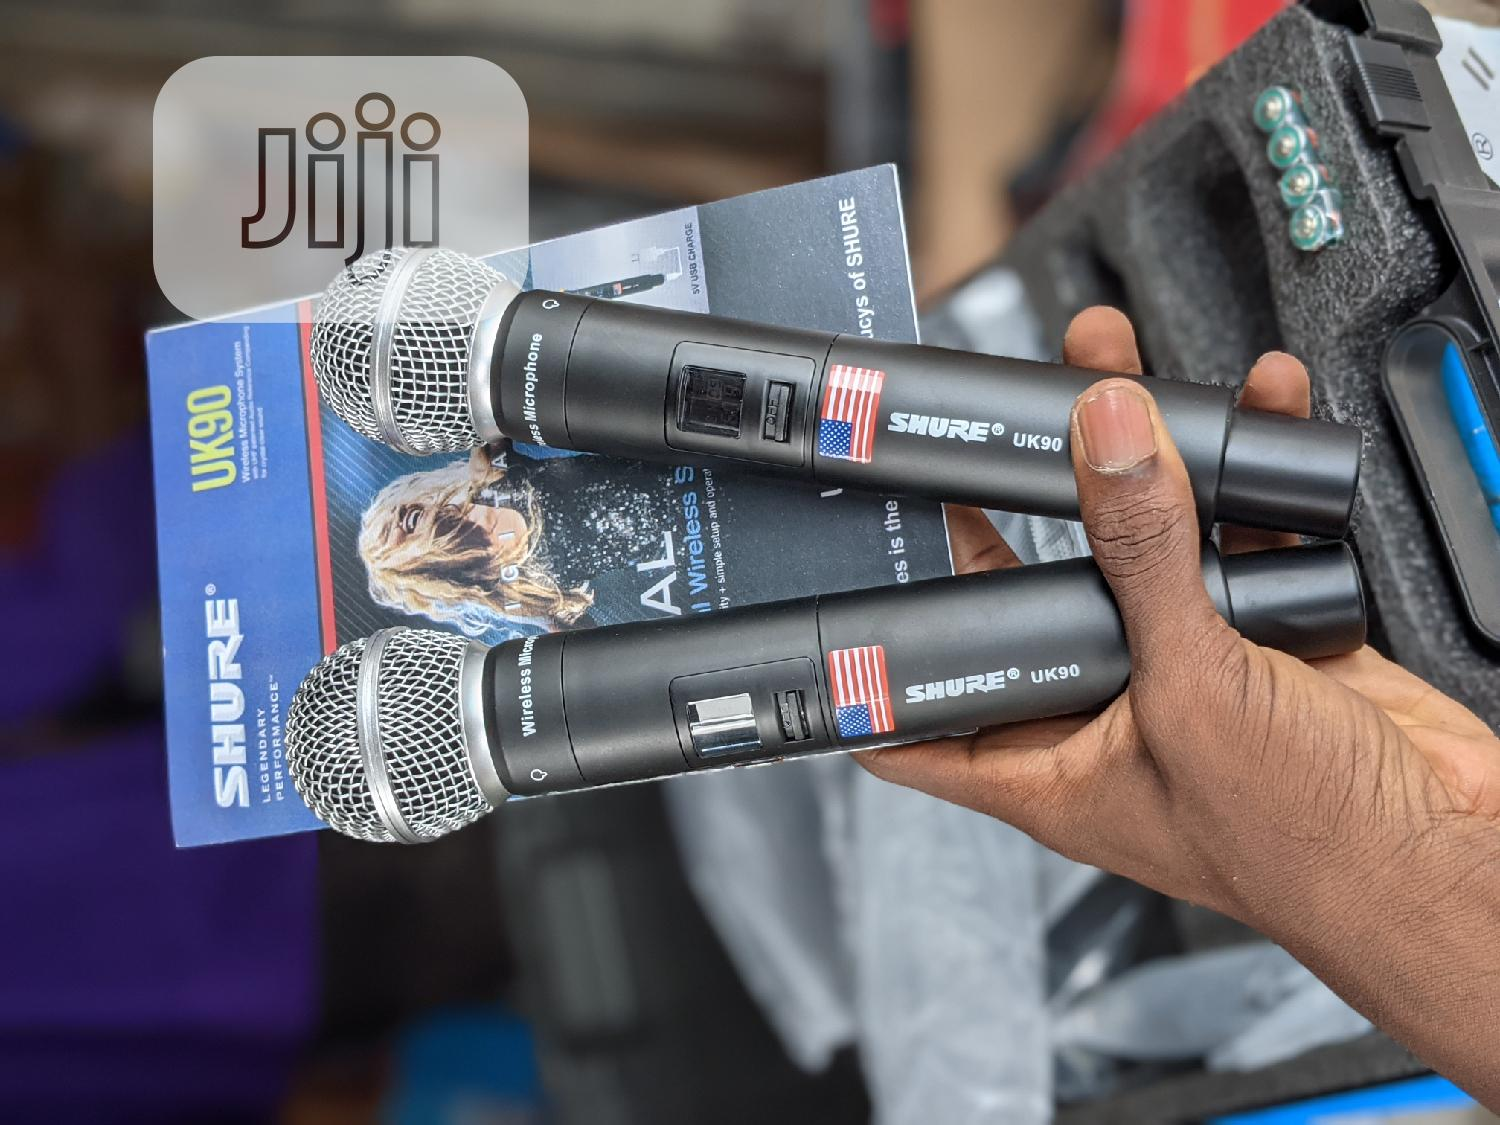 USA Shure Wireless Mic With Long Range,Digital Mics and Case | Audio & Music Equipment for sale in Ojodu, Lagos State, Nigeria